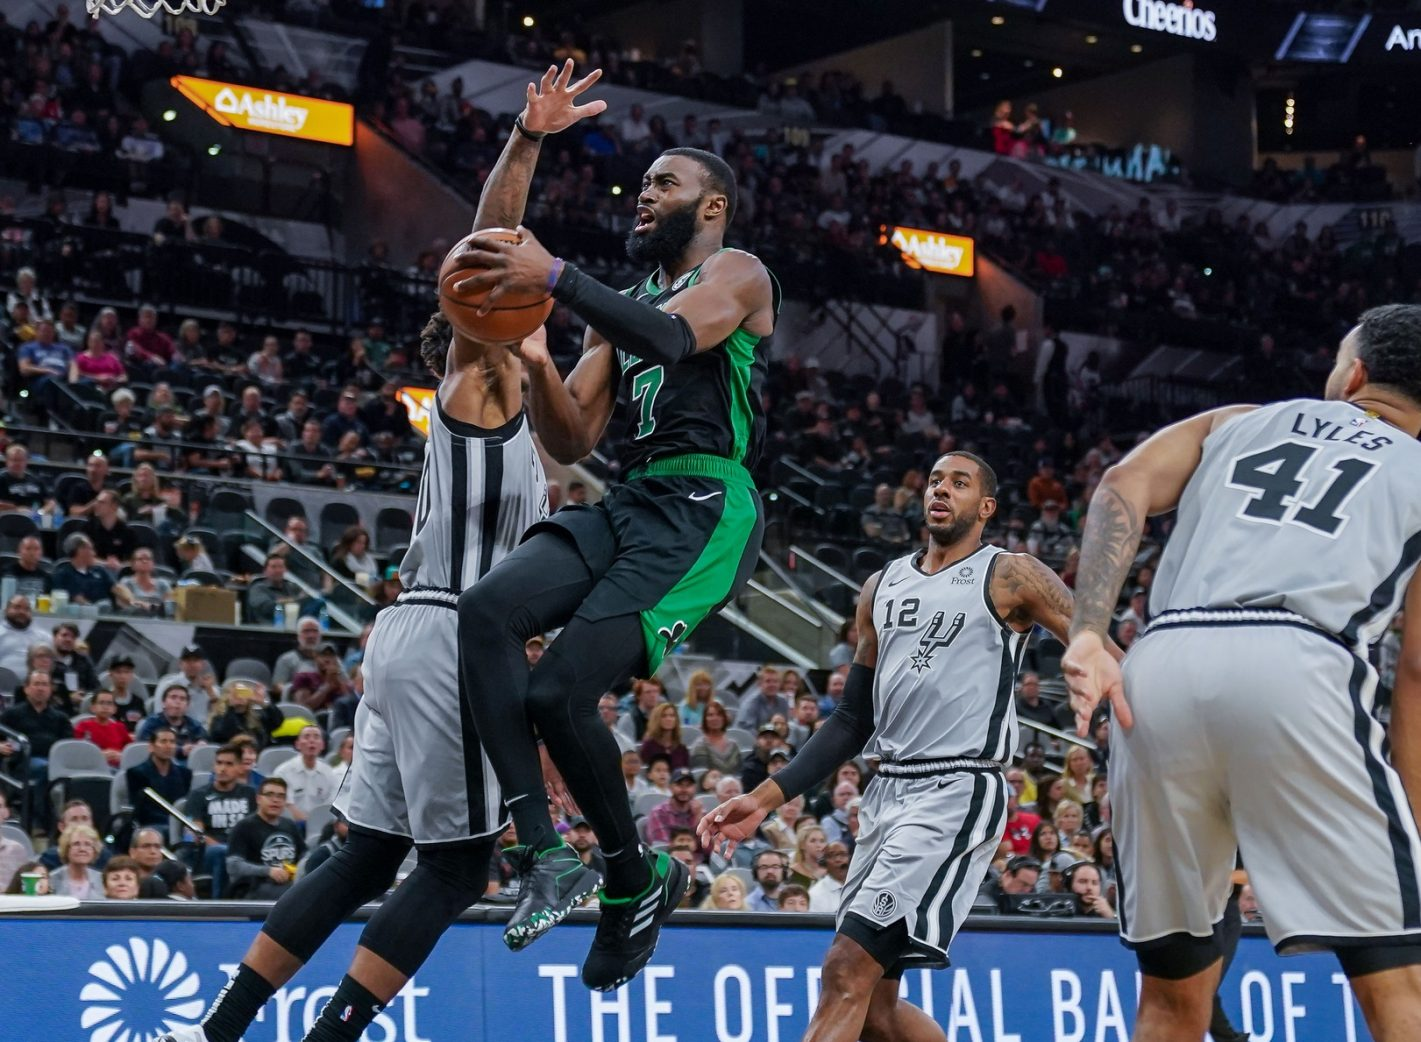 Rapid Recap: Celtics beat Spurs in San Anton, at potentially great cost